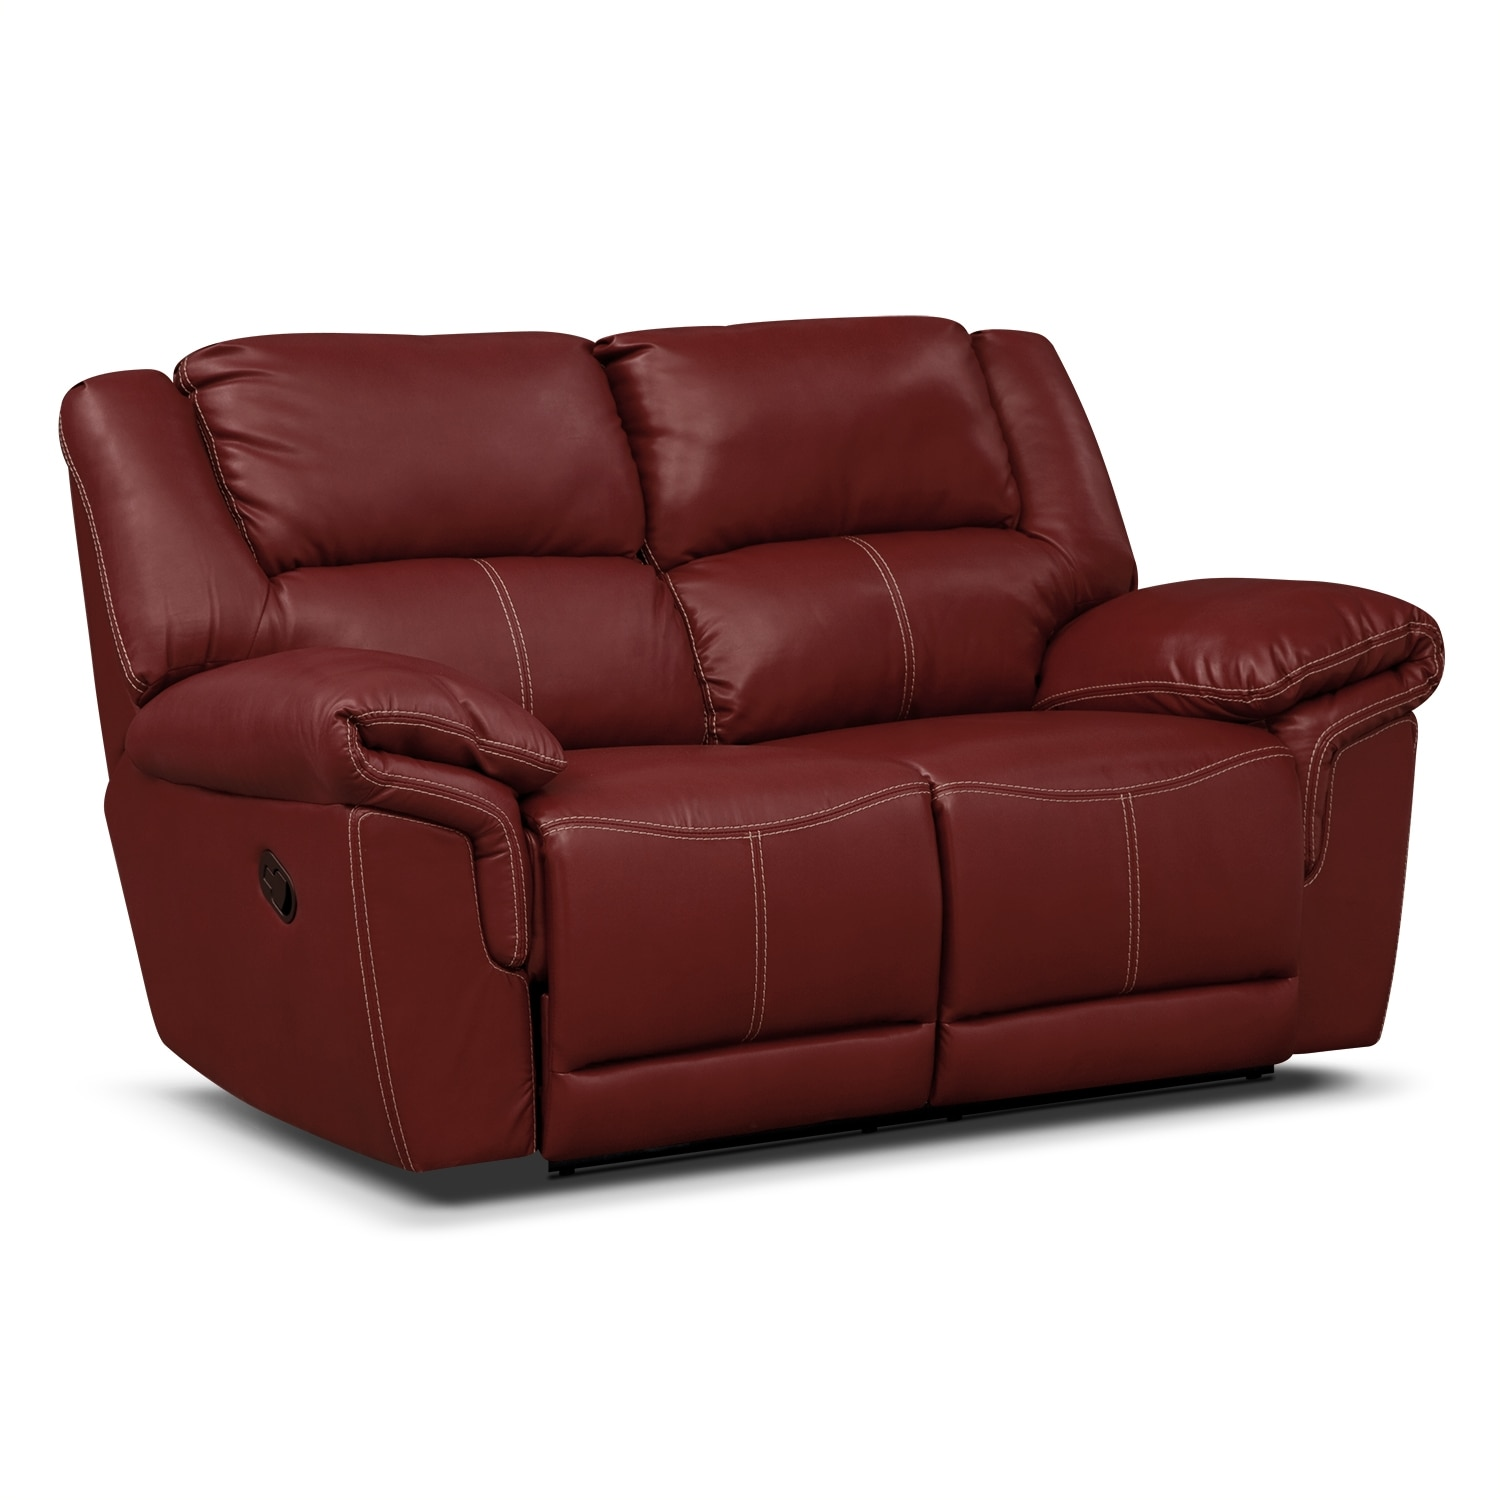 Reclining loveseat sale 28 images cheap reclining sofas sale fabric recliner sofas sale Loveseats that recline